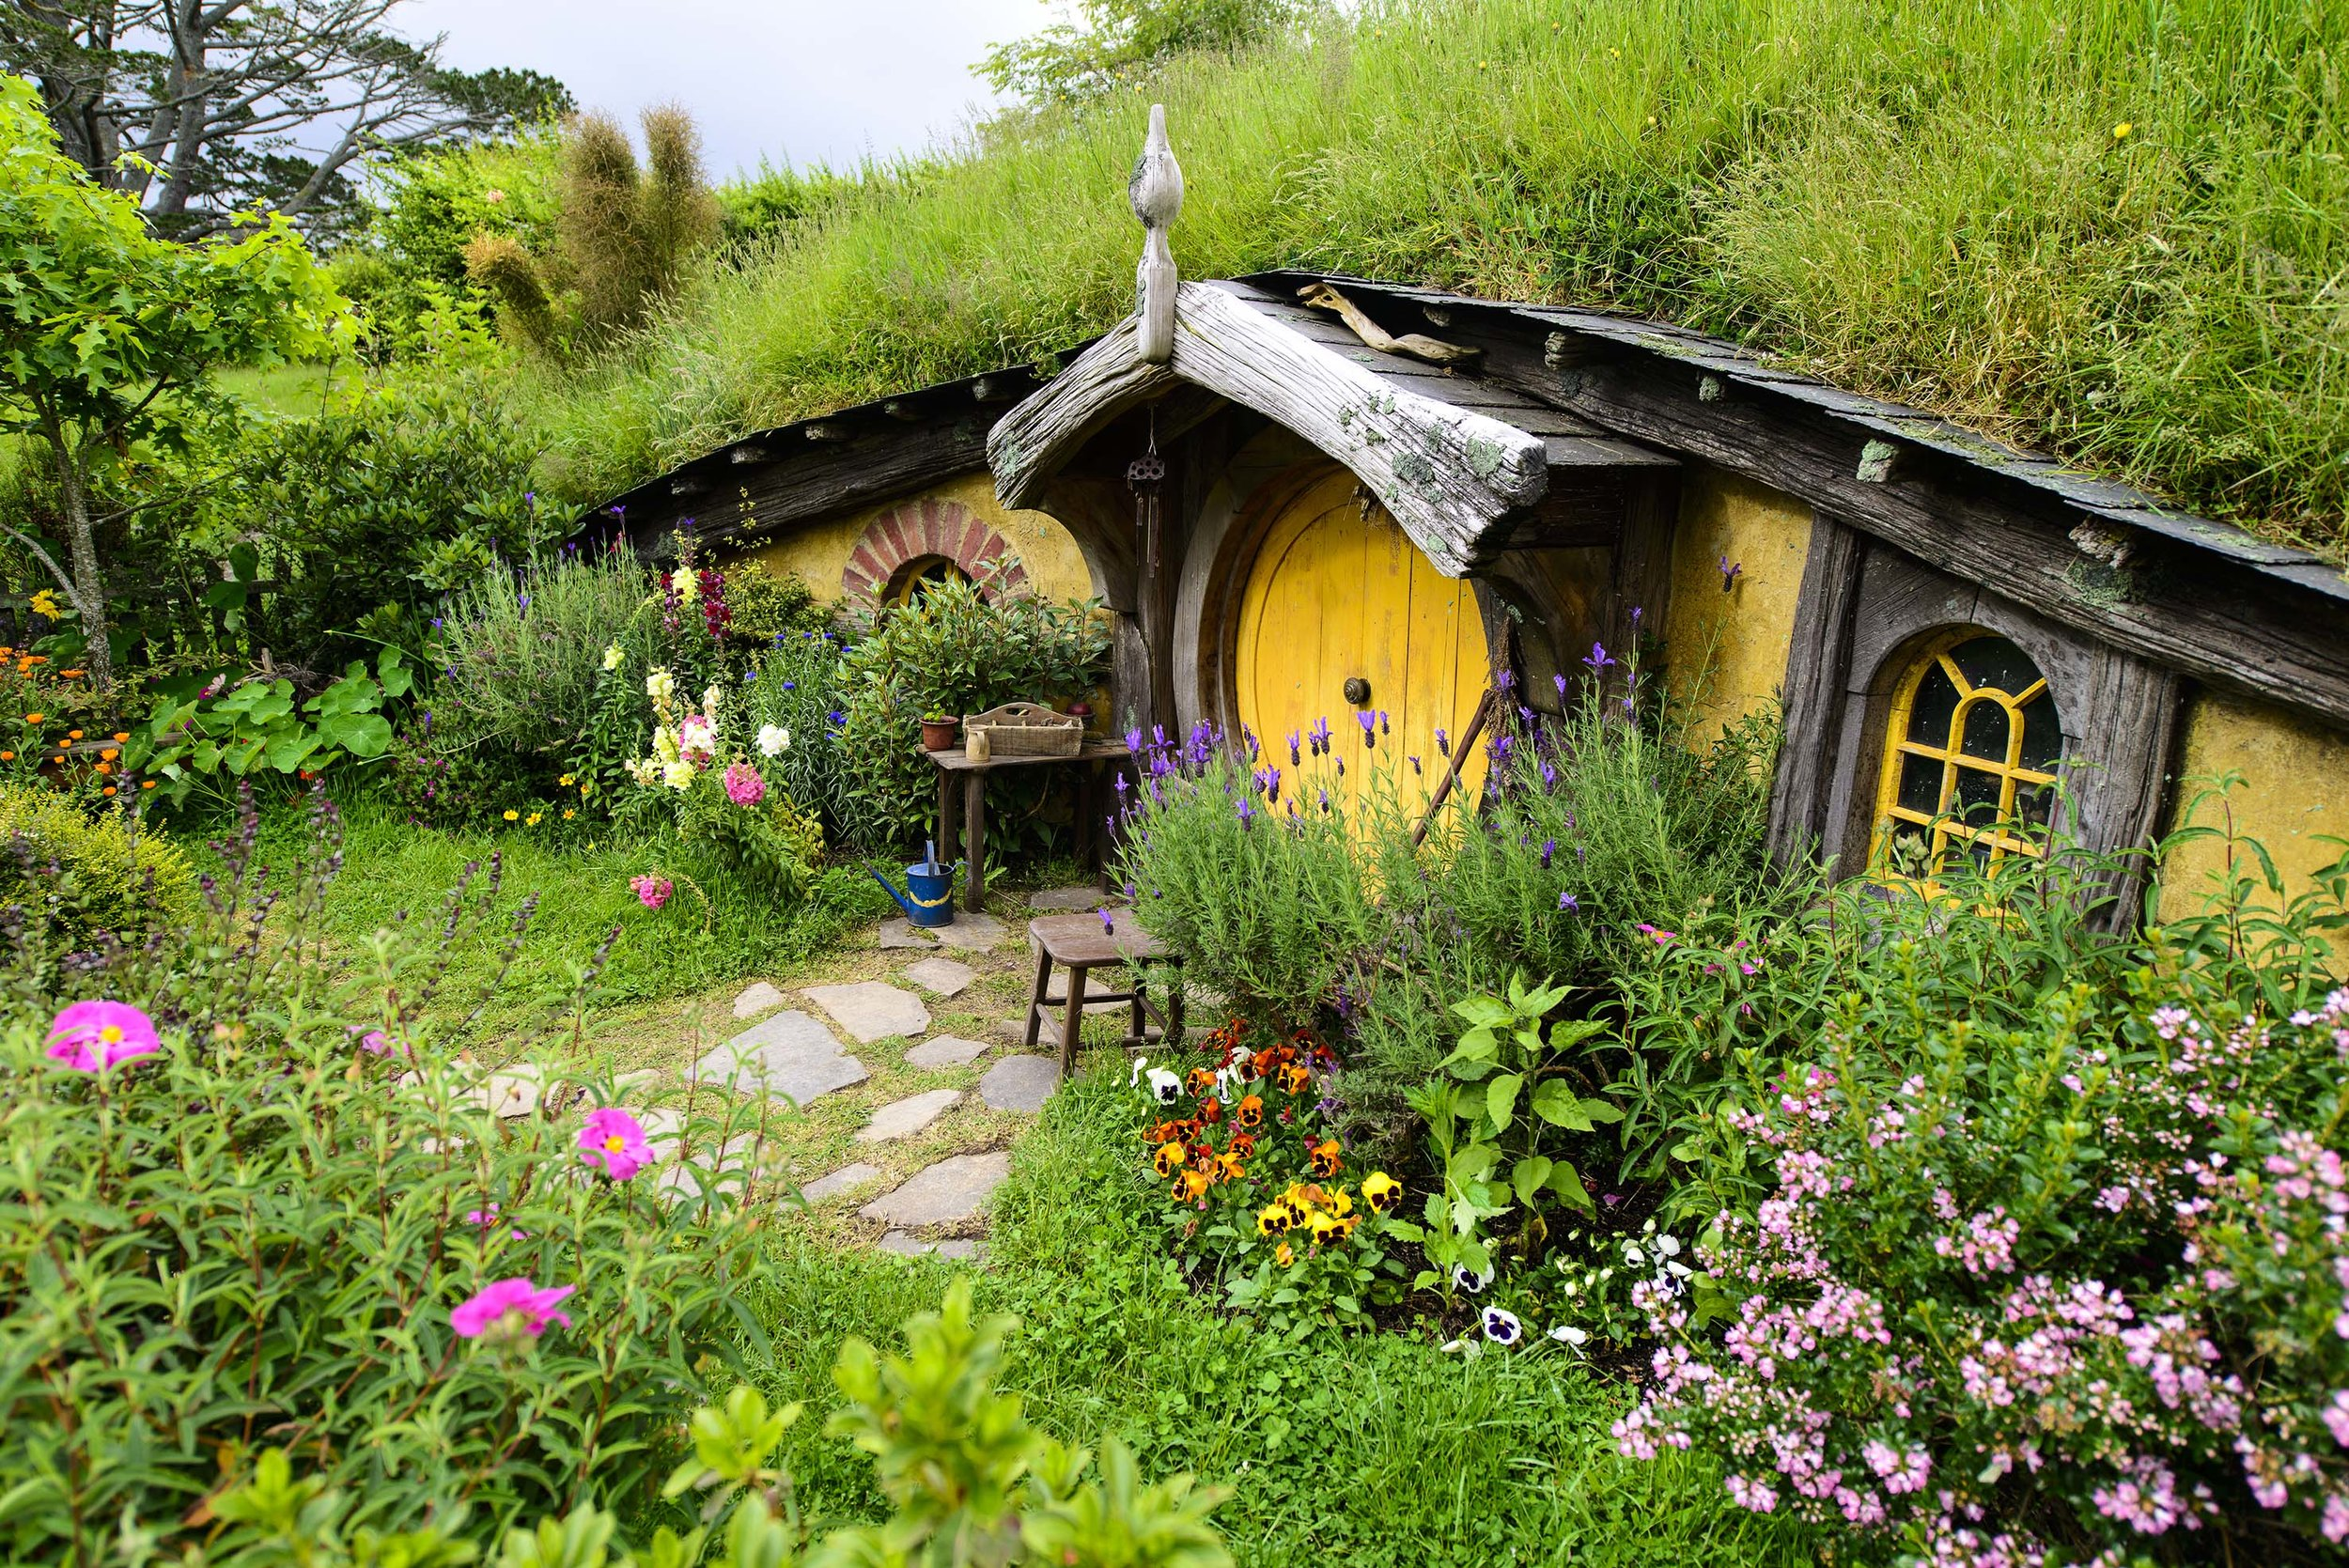 yellow hobbit hole 4 (1).jpg